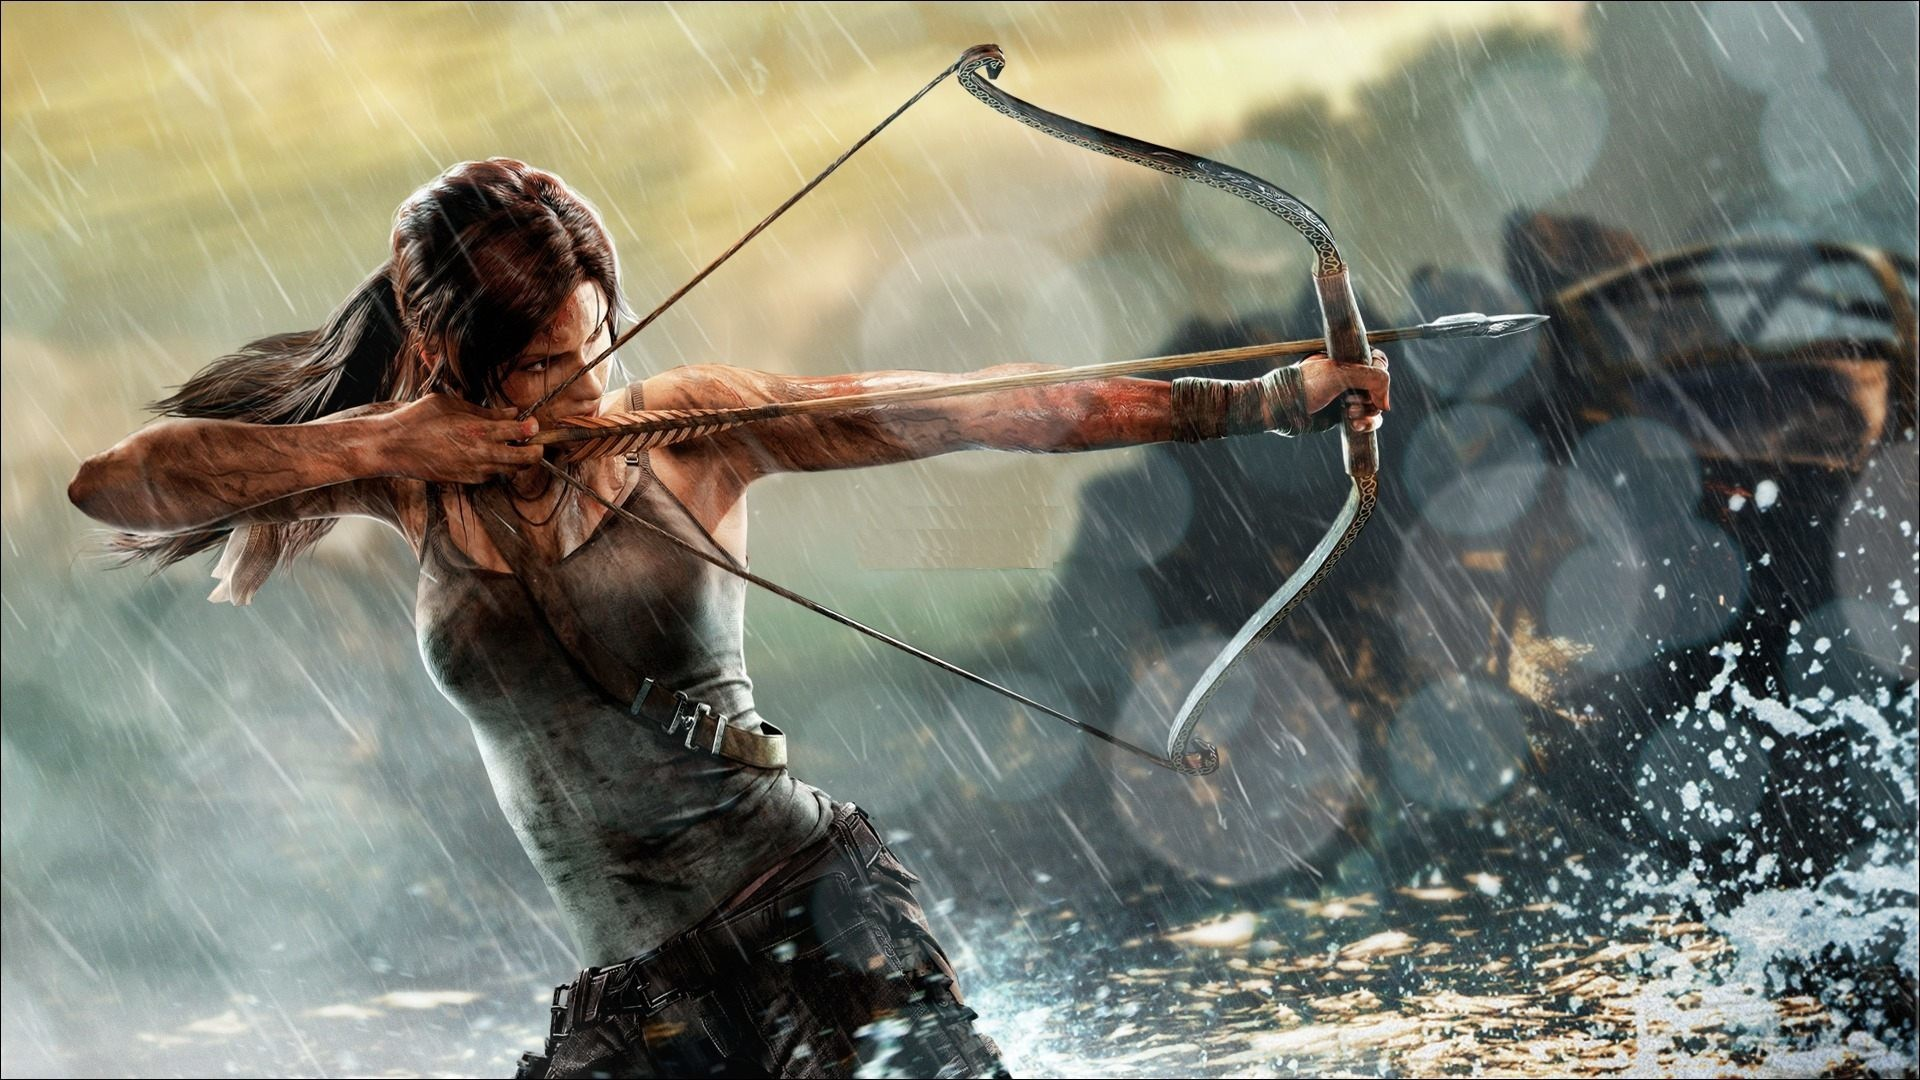 1920x1080 widescreen-archery-wallpaper-1920×1080-lockscreen-WTG200127419